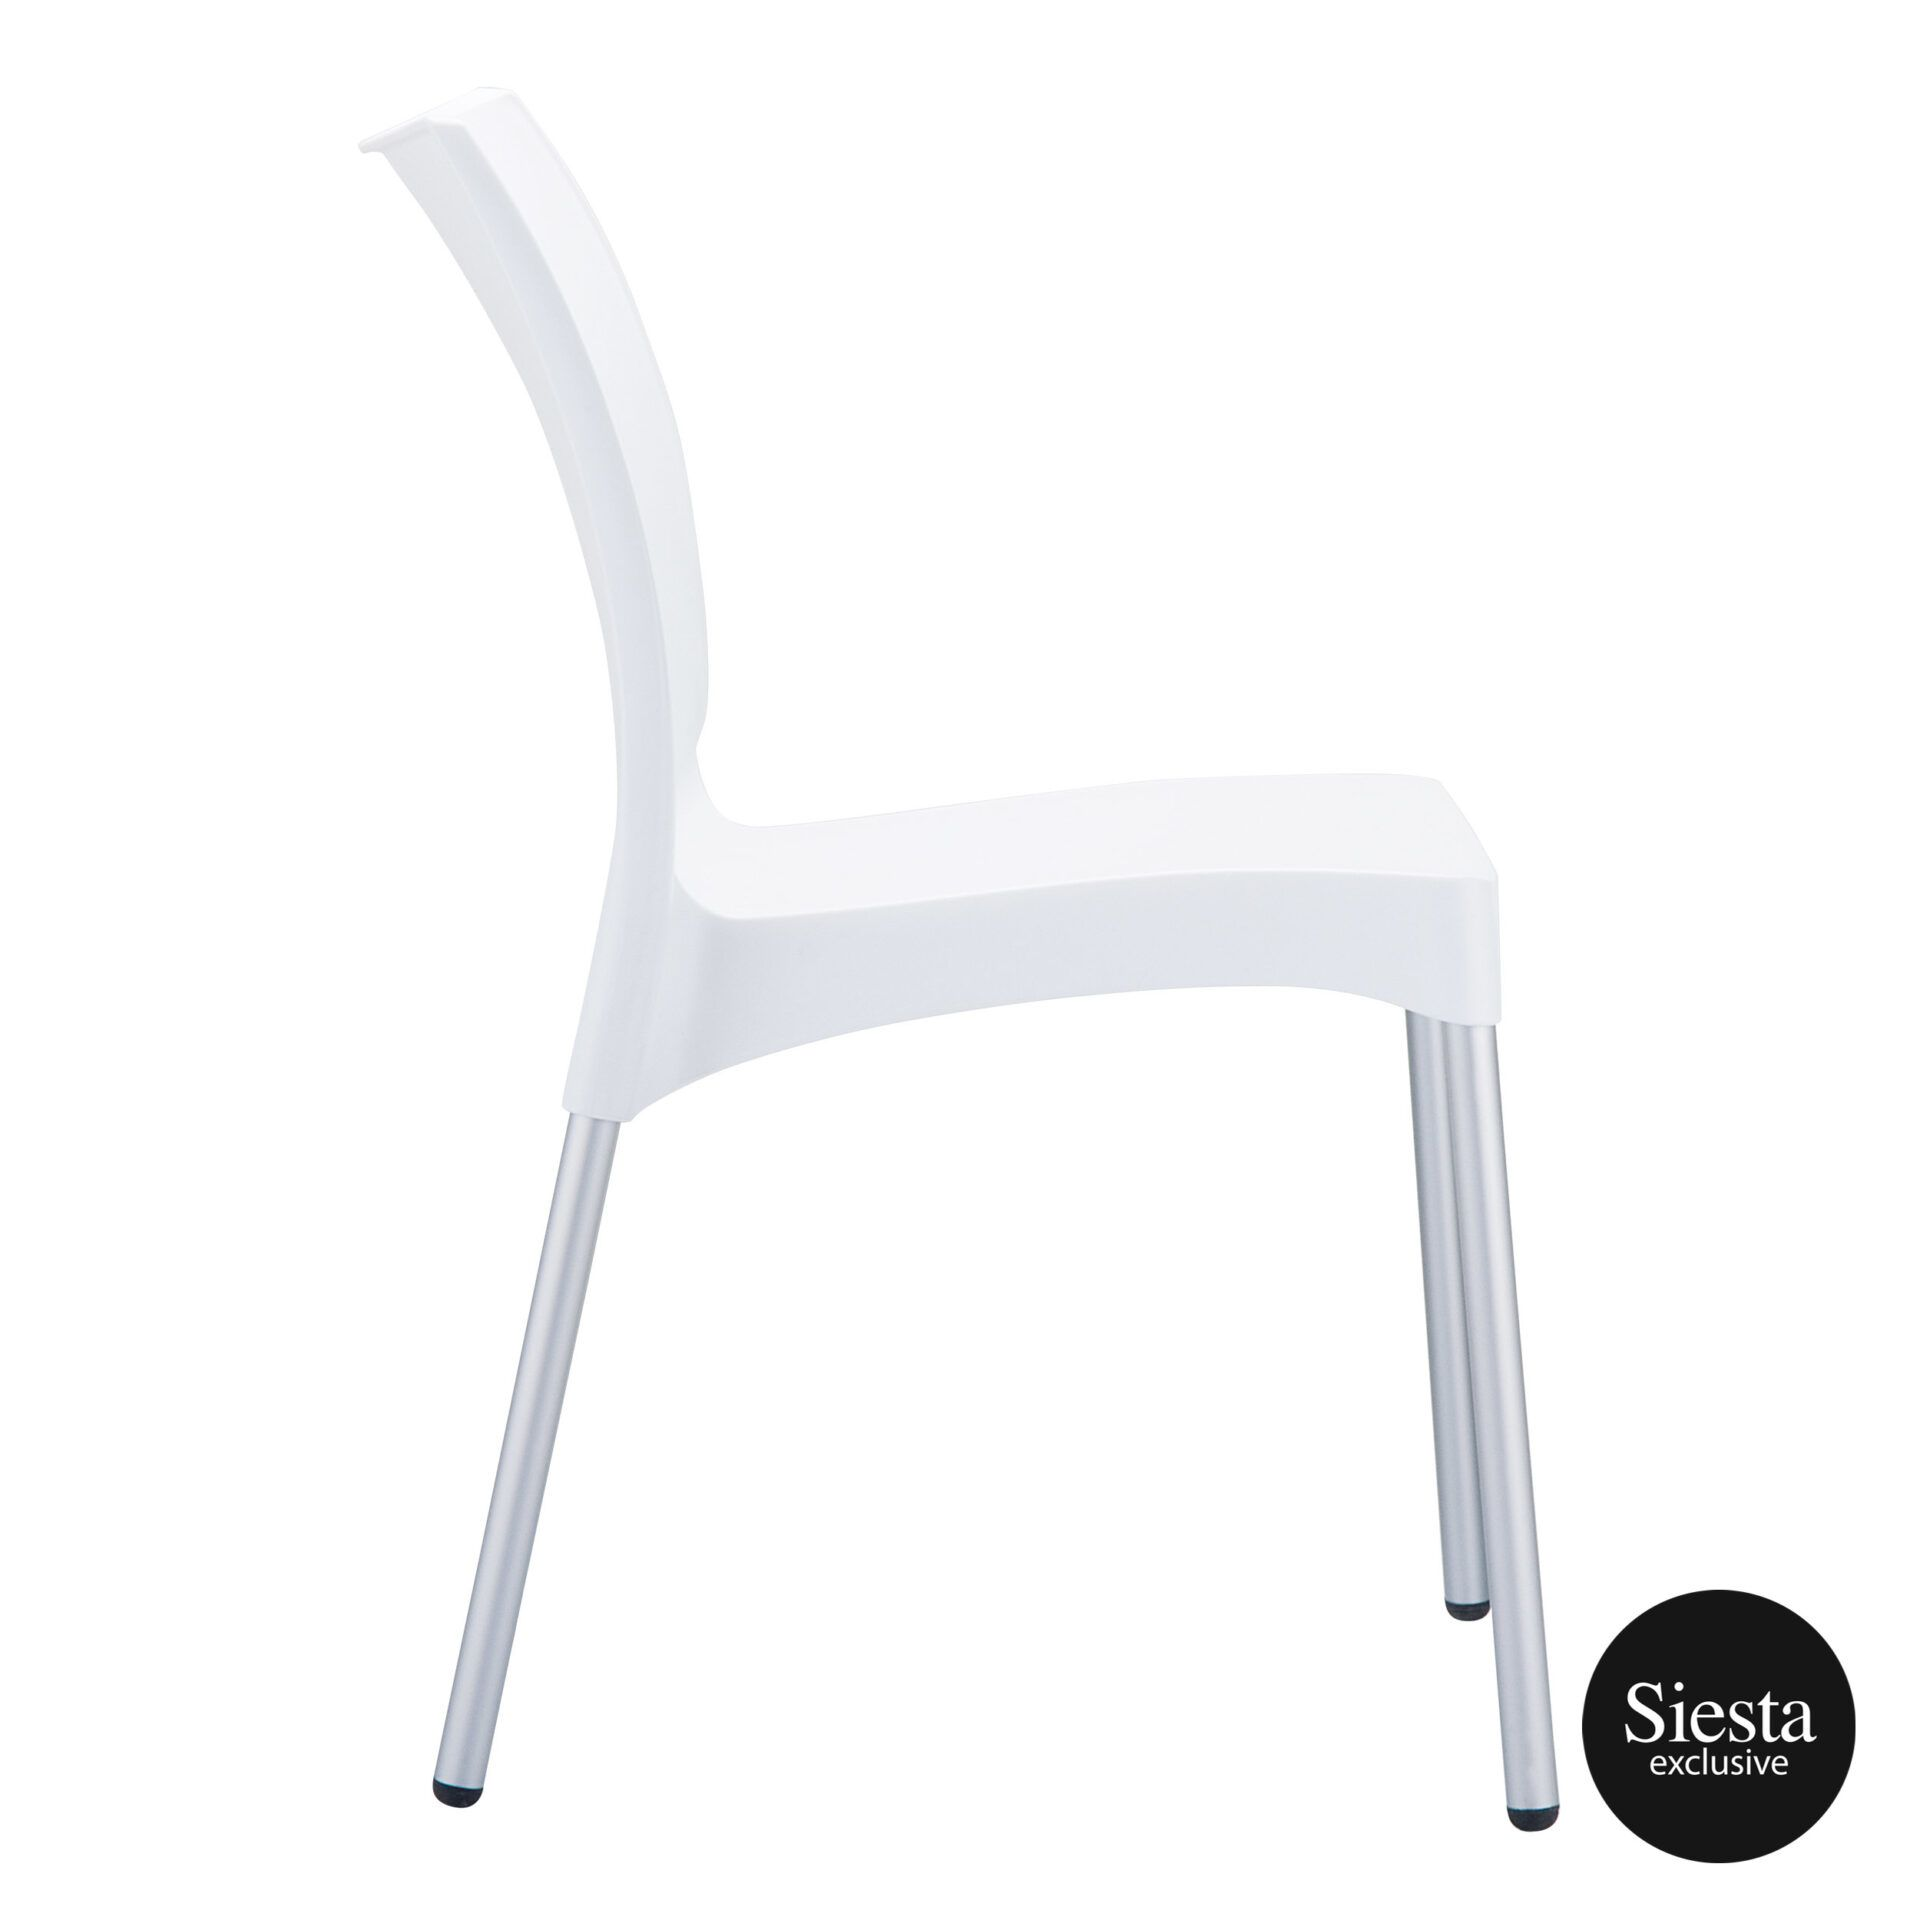 commercial outdoor hospitality seating vita chair white side 1